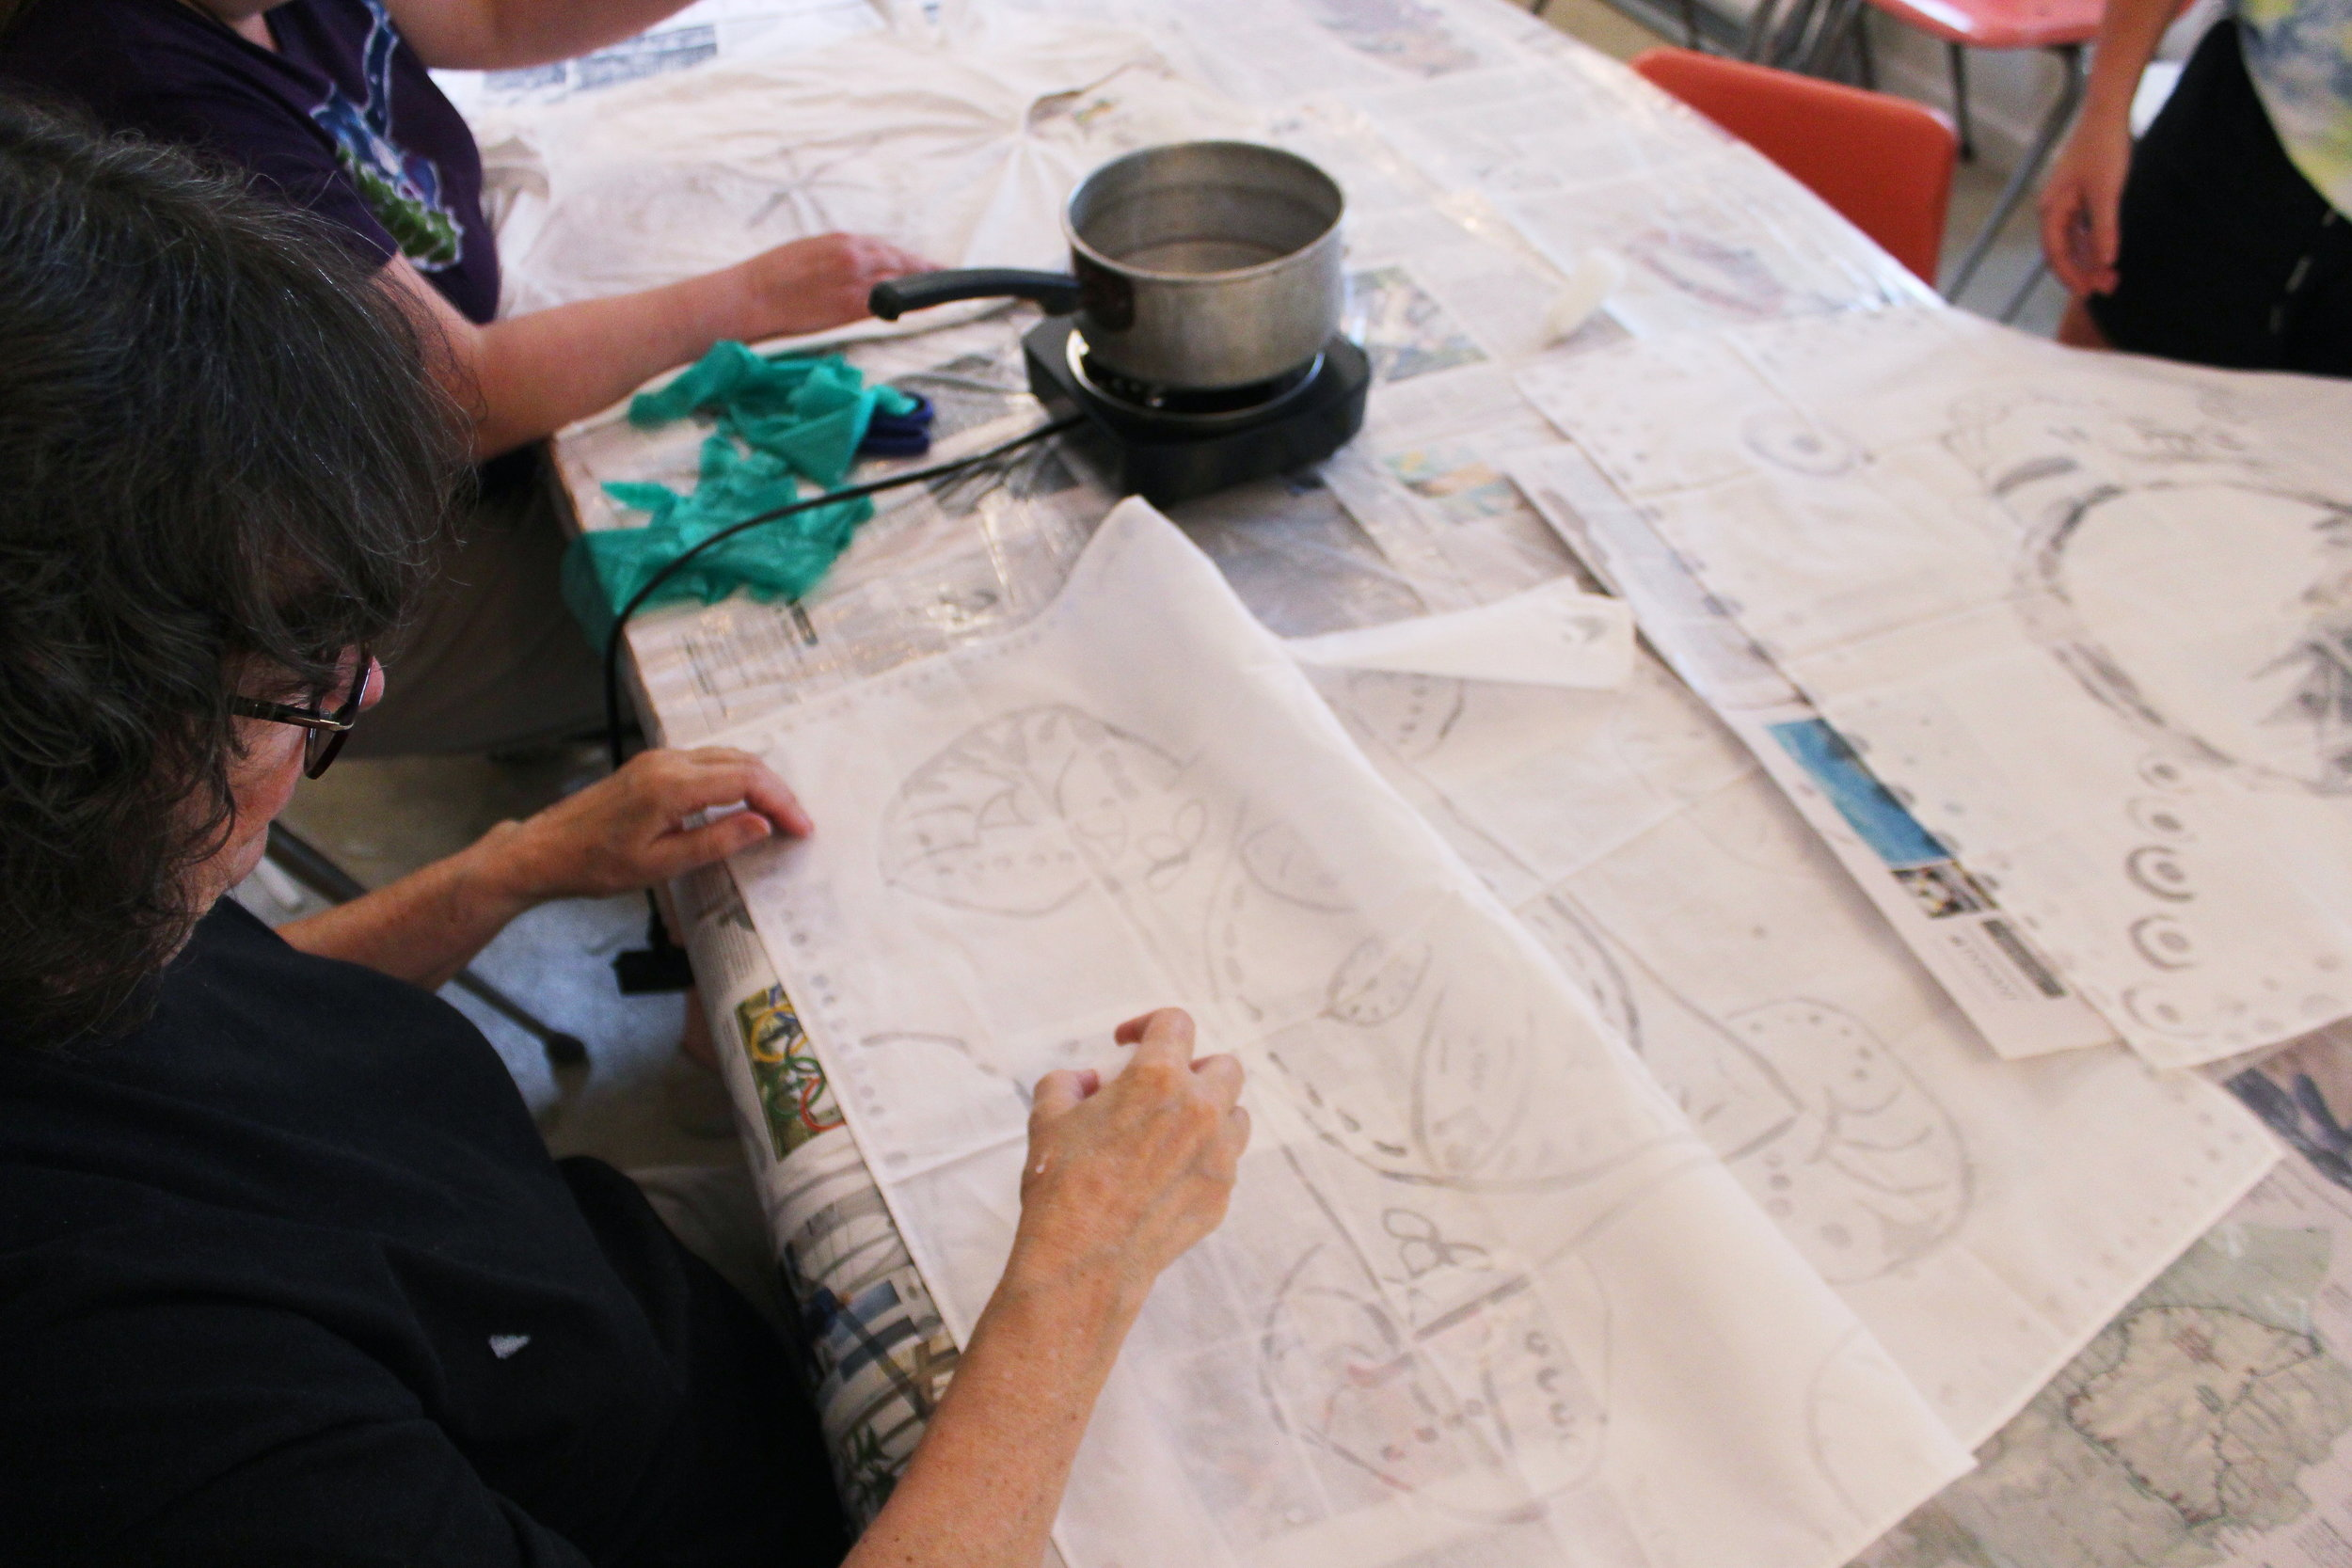 Workshops - The Fiber Project offers workshops in indigo dyeing, dyeing with natural dyes, weaving, and other fiber arts projects.Make sure to check in throughout the year to see whats being offered!